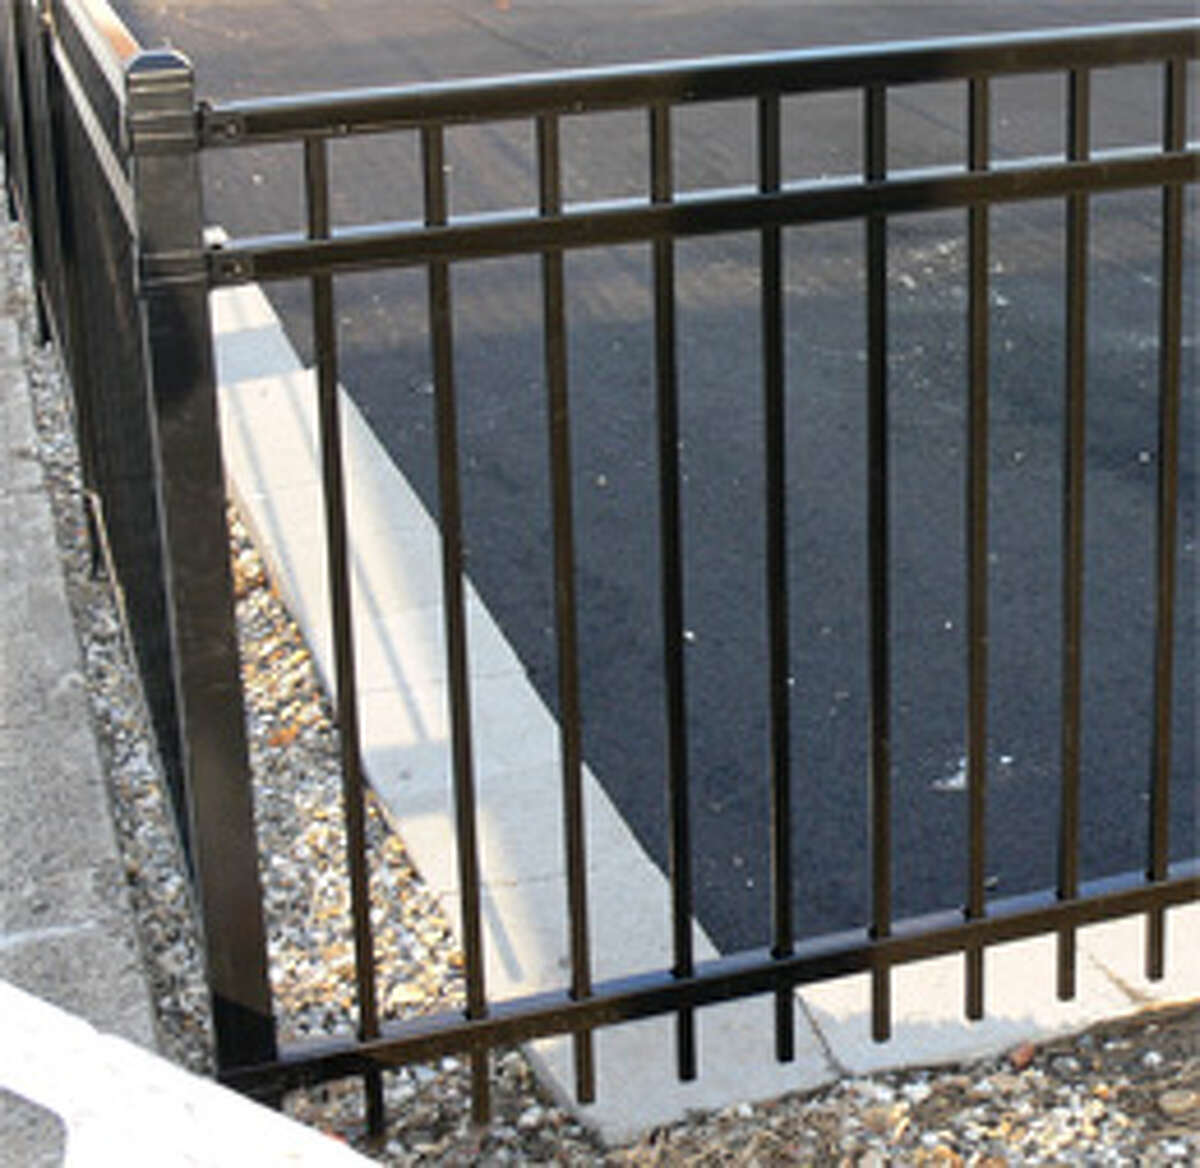 Decorative black fencing has been placed around the new Plumb Memorial lot.